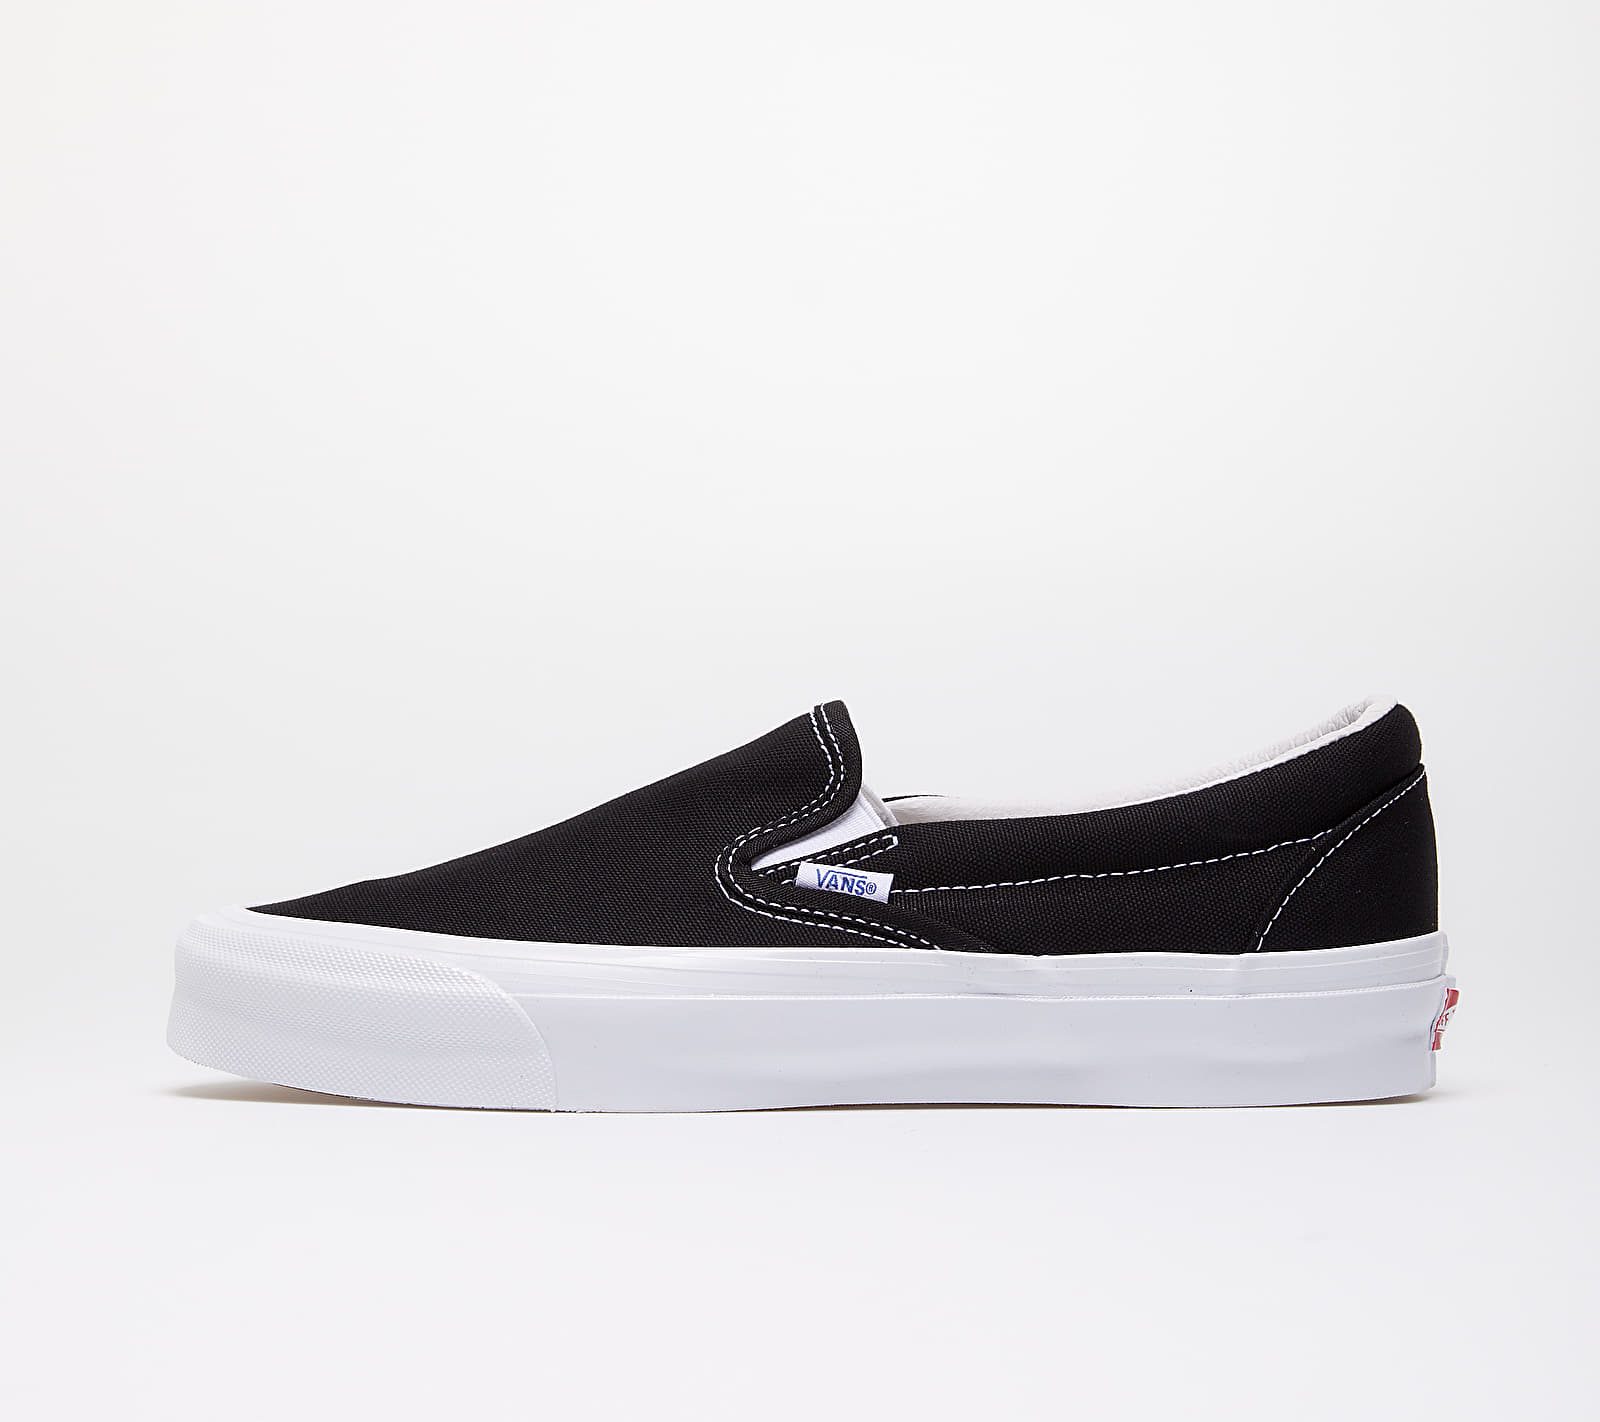 Vans Vault OG Classic Slip-On (Canvas) Black/ True White EUR 42.5